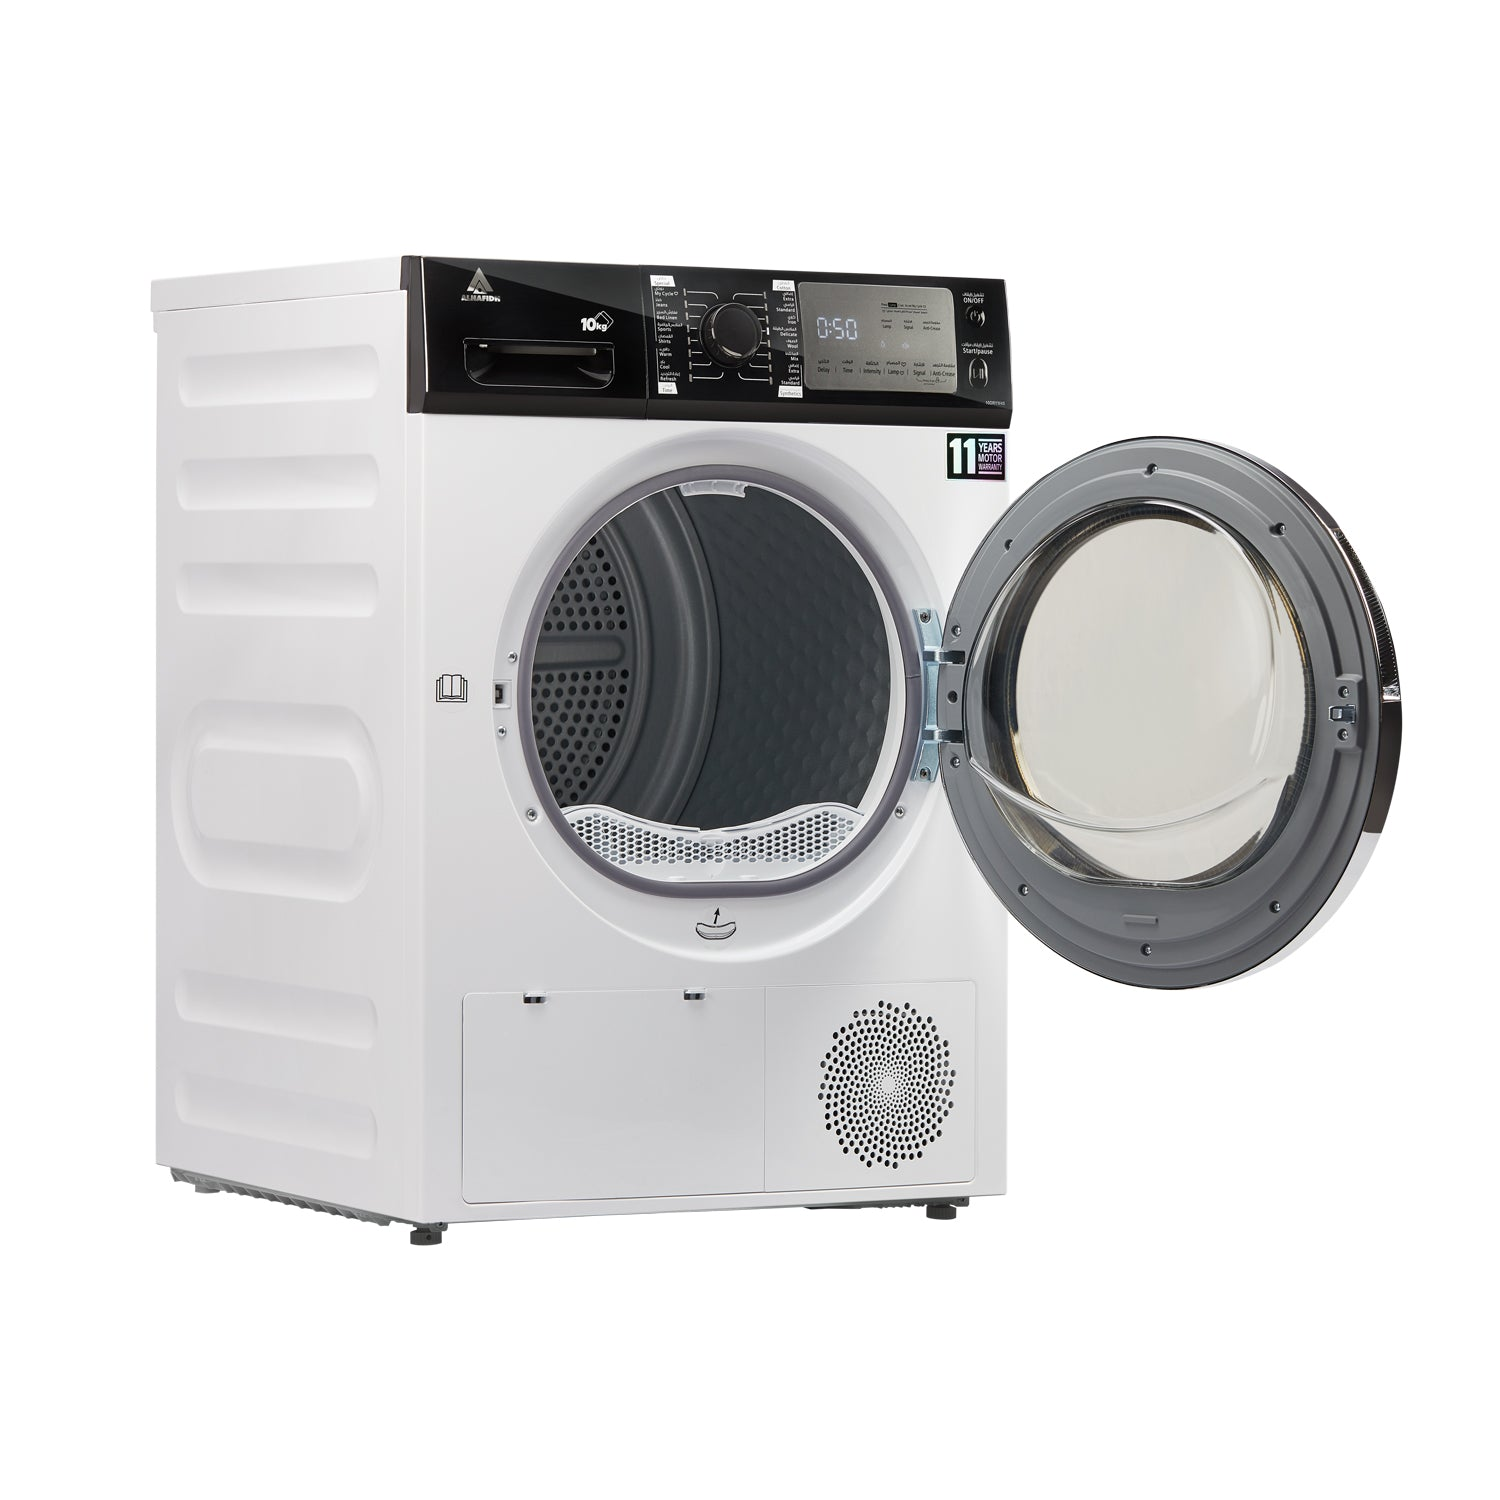 Tumble Dryer 10KG 10DRYW45